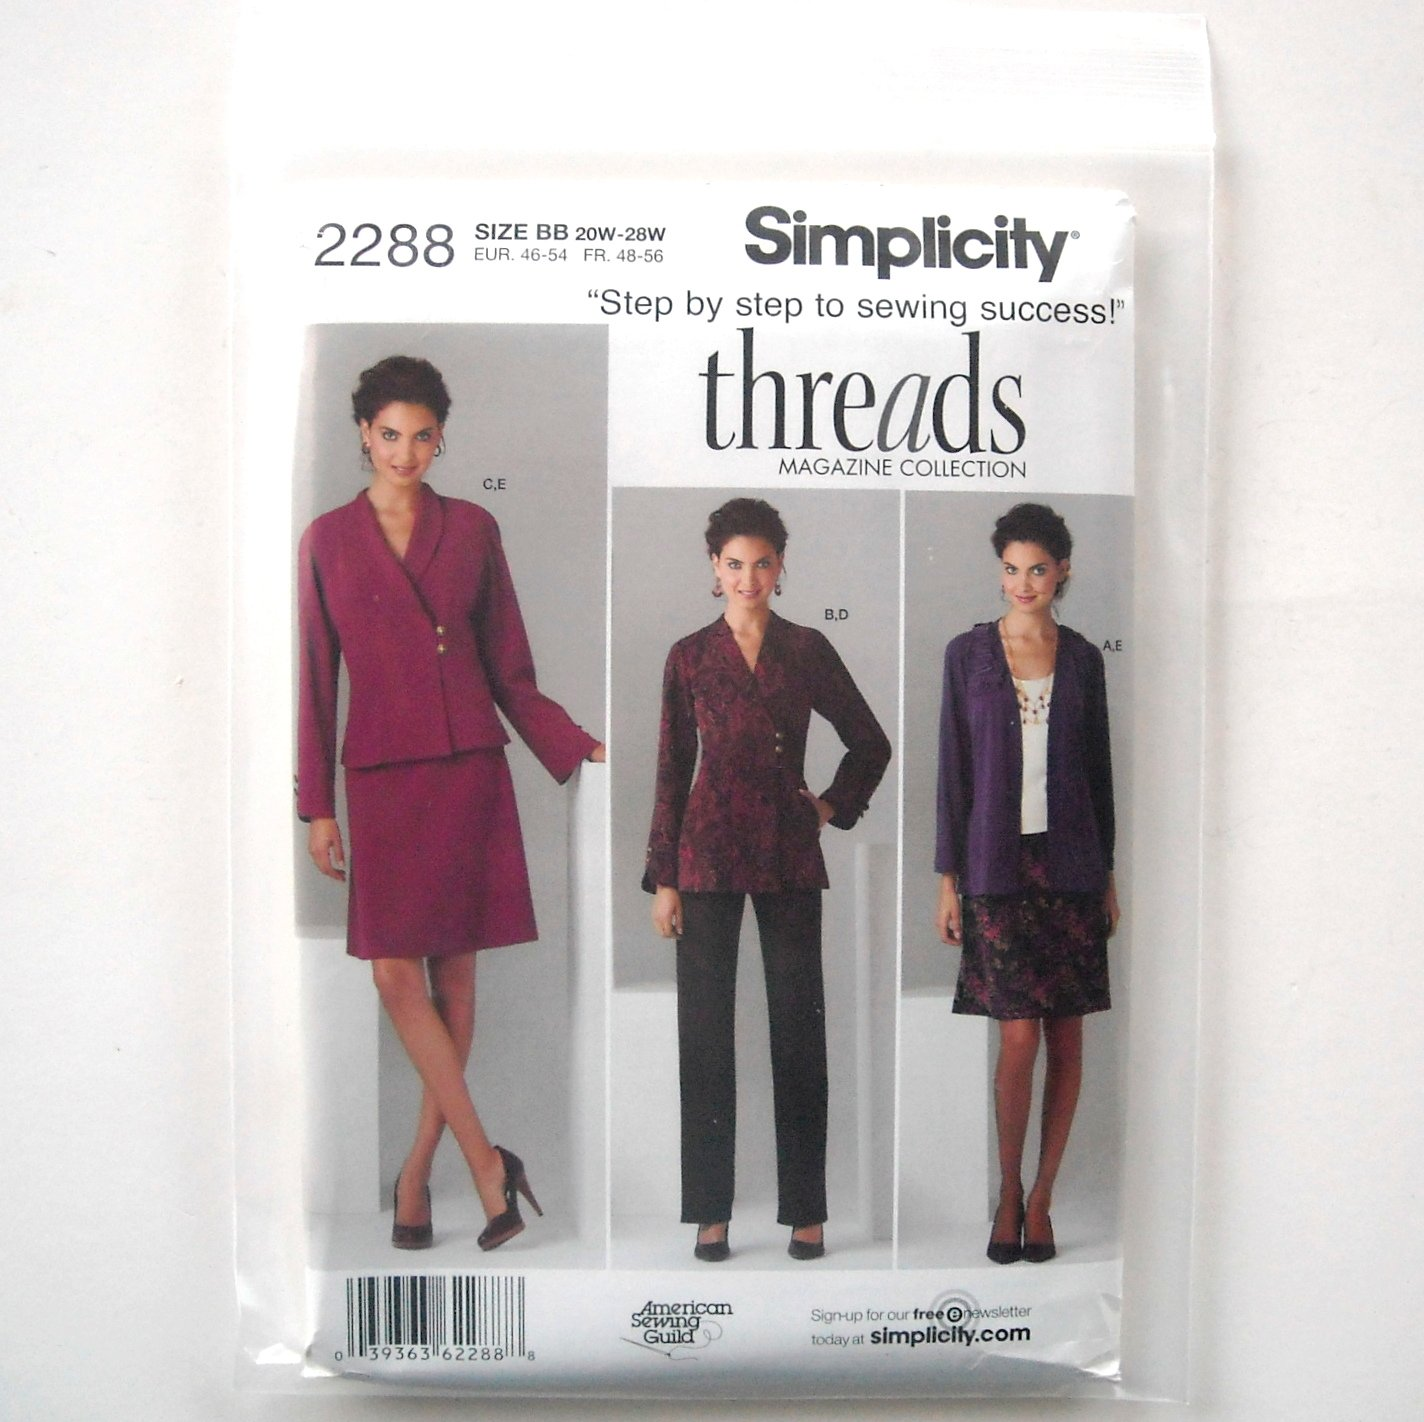 Simplicity Pattern 2288 Size 20W - 28W Threads American Sewing Guild Misses Plus Jacket Pants Skirt